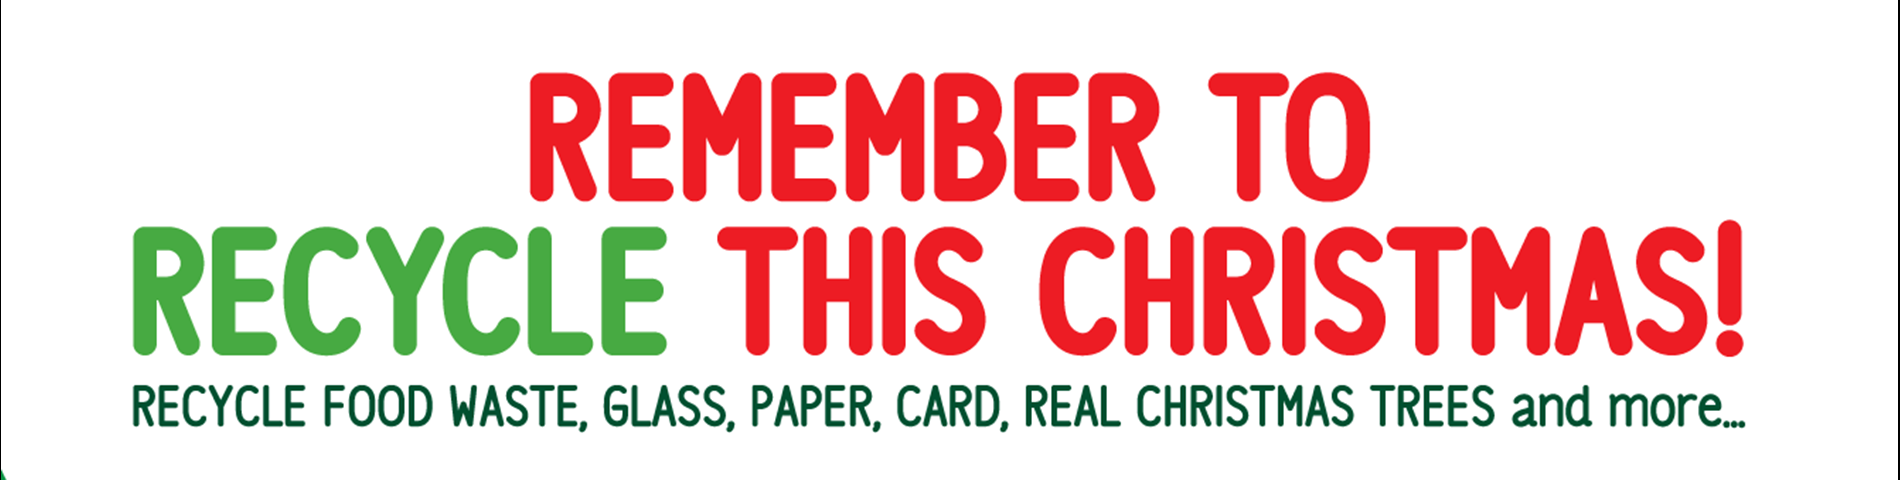 Remember to recycle this Christmas - food waste, paper, card, real christmas trees and more